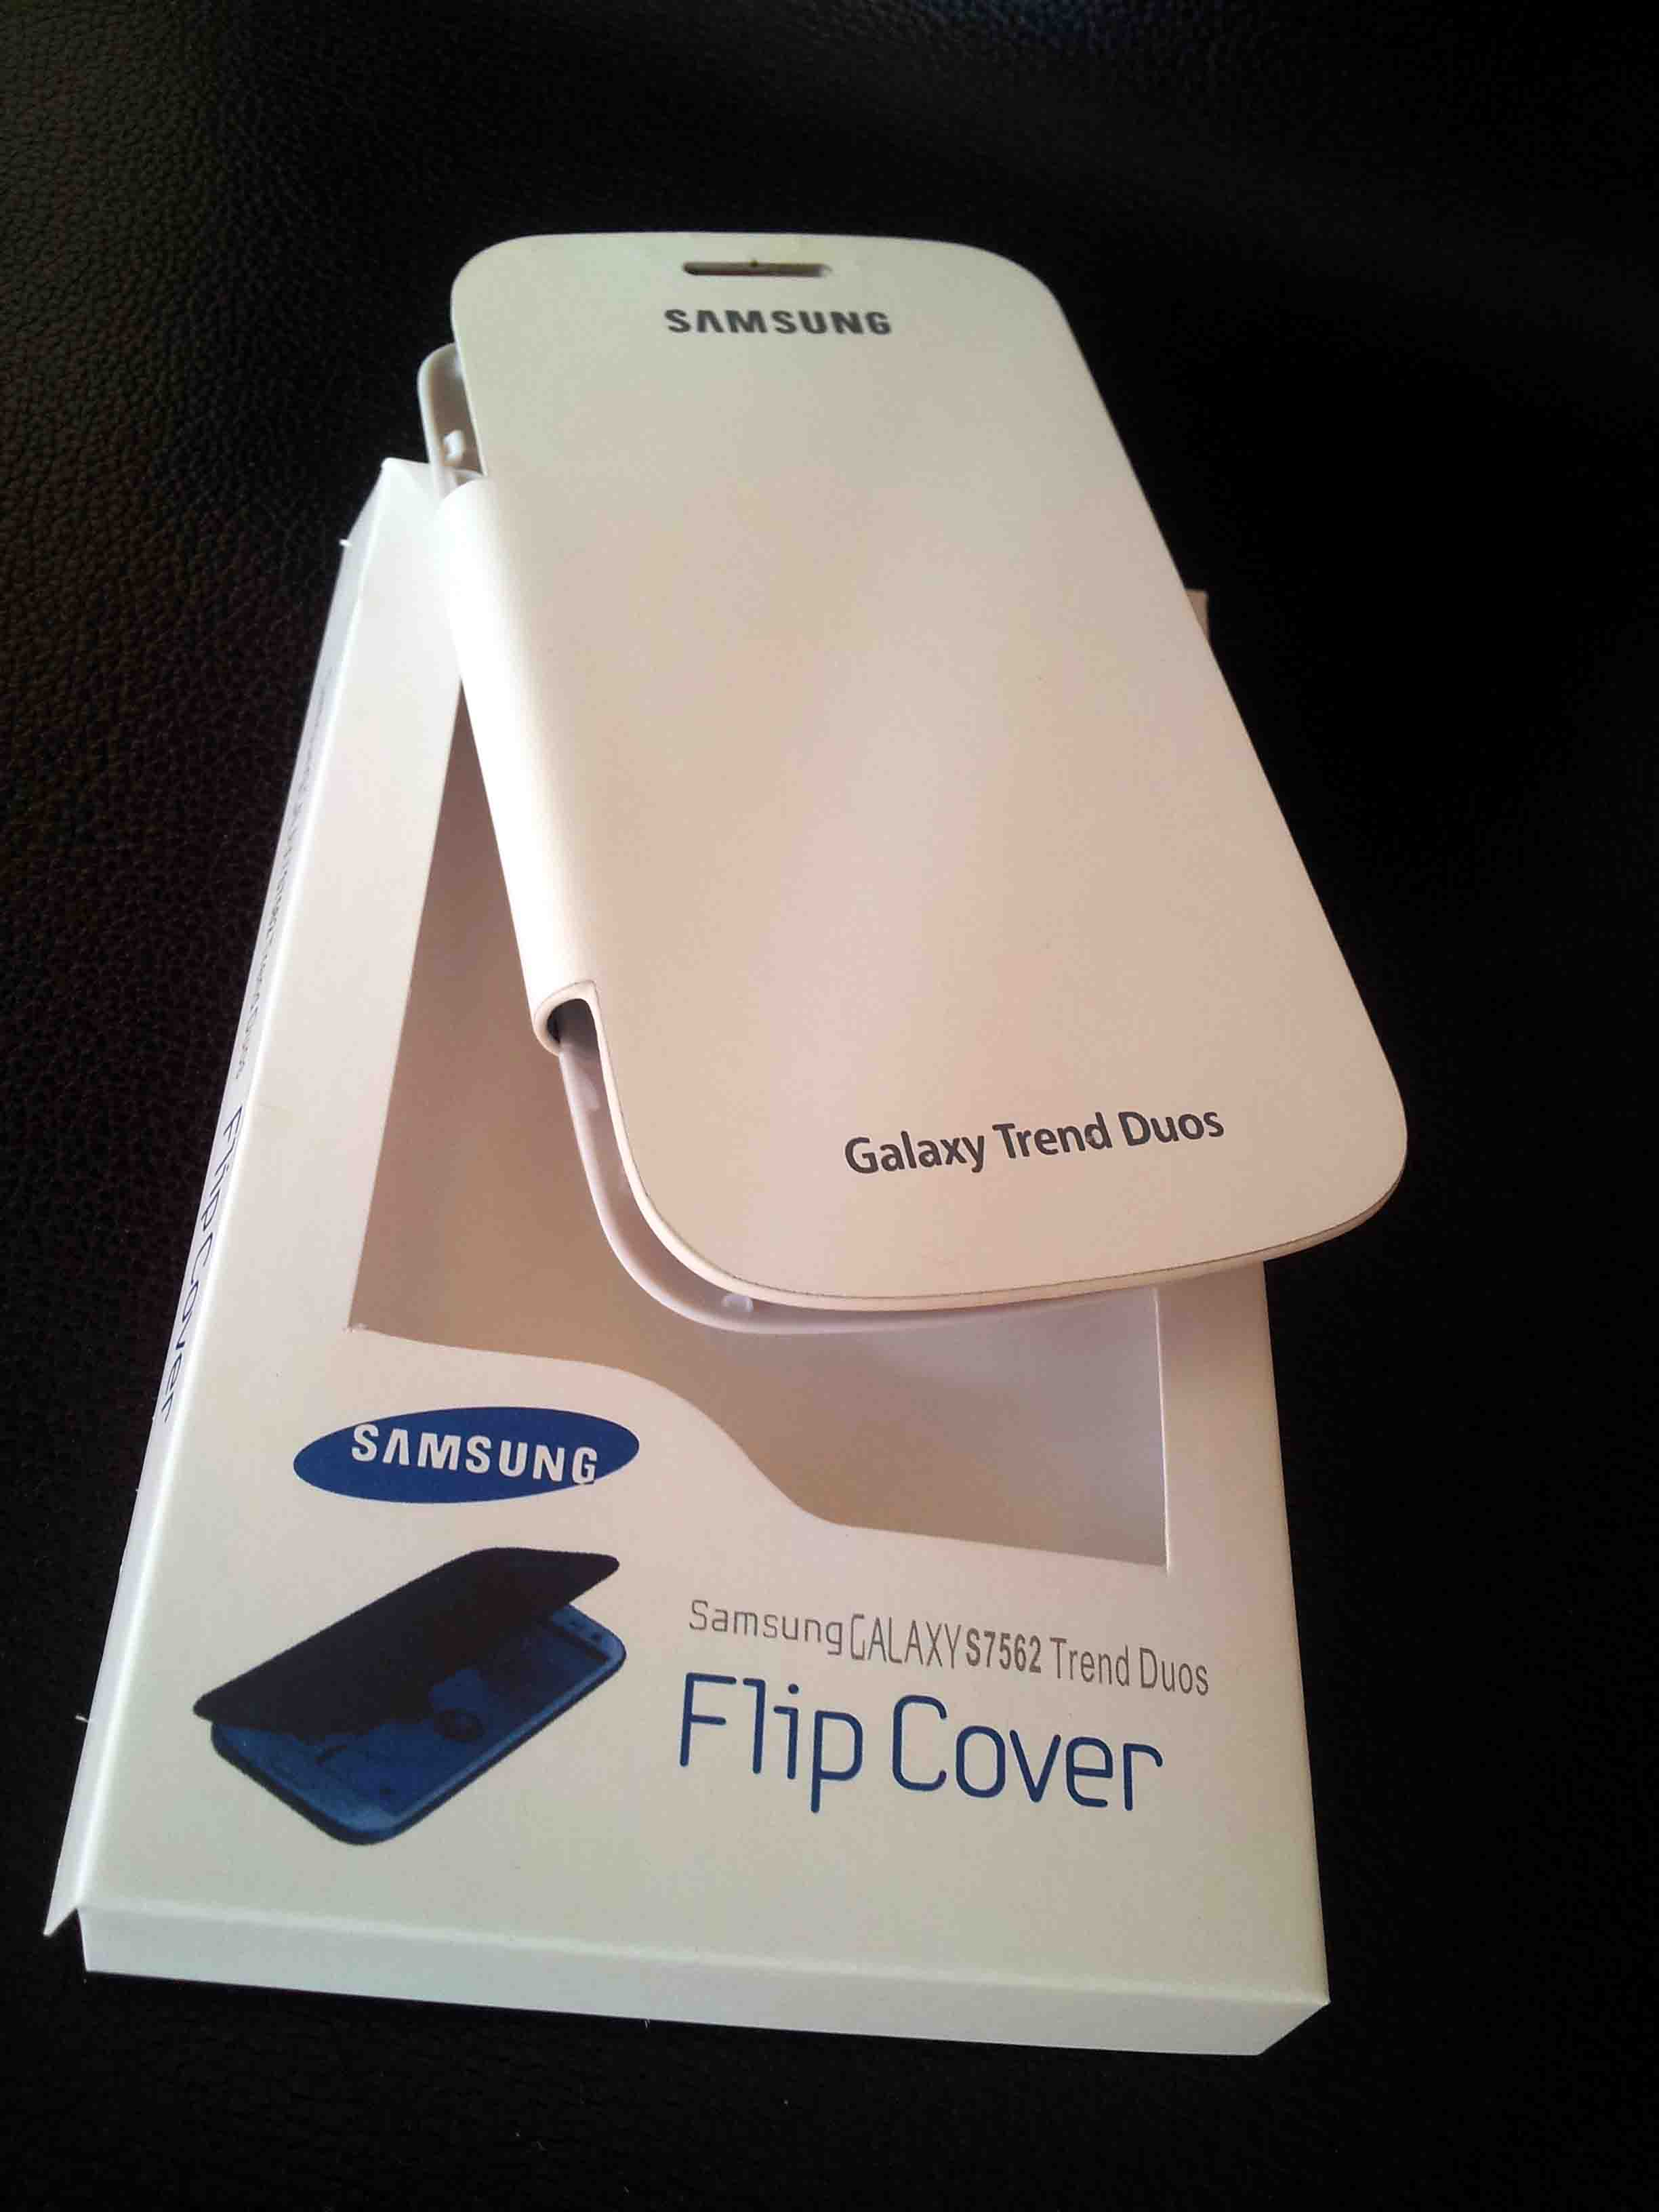 Samsung Galaxy S Trend Duos Flip Cover For S7562 S 7562 - White {Battery Panel Detactable Flap style cover}